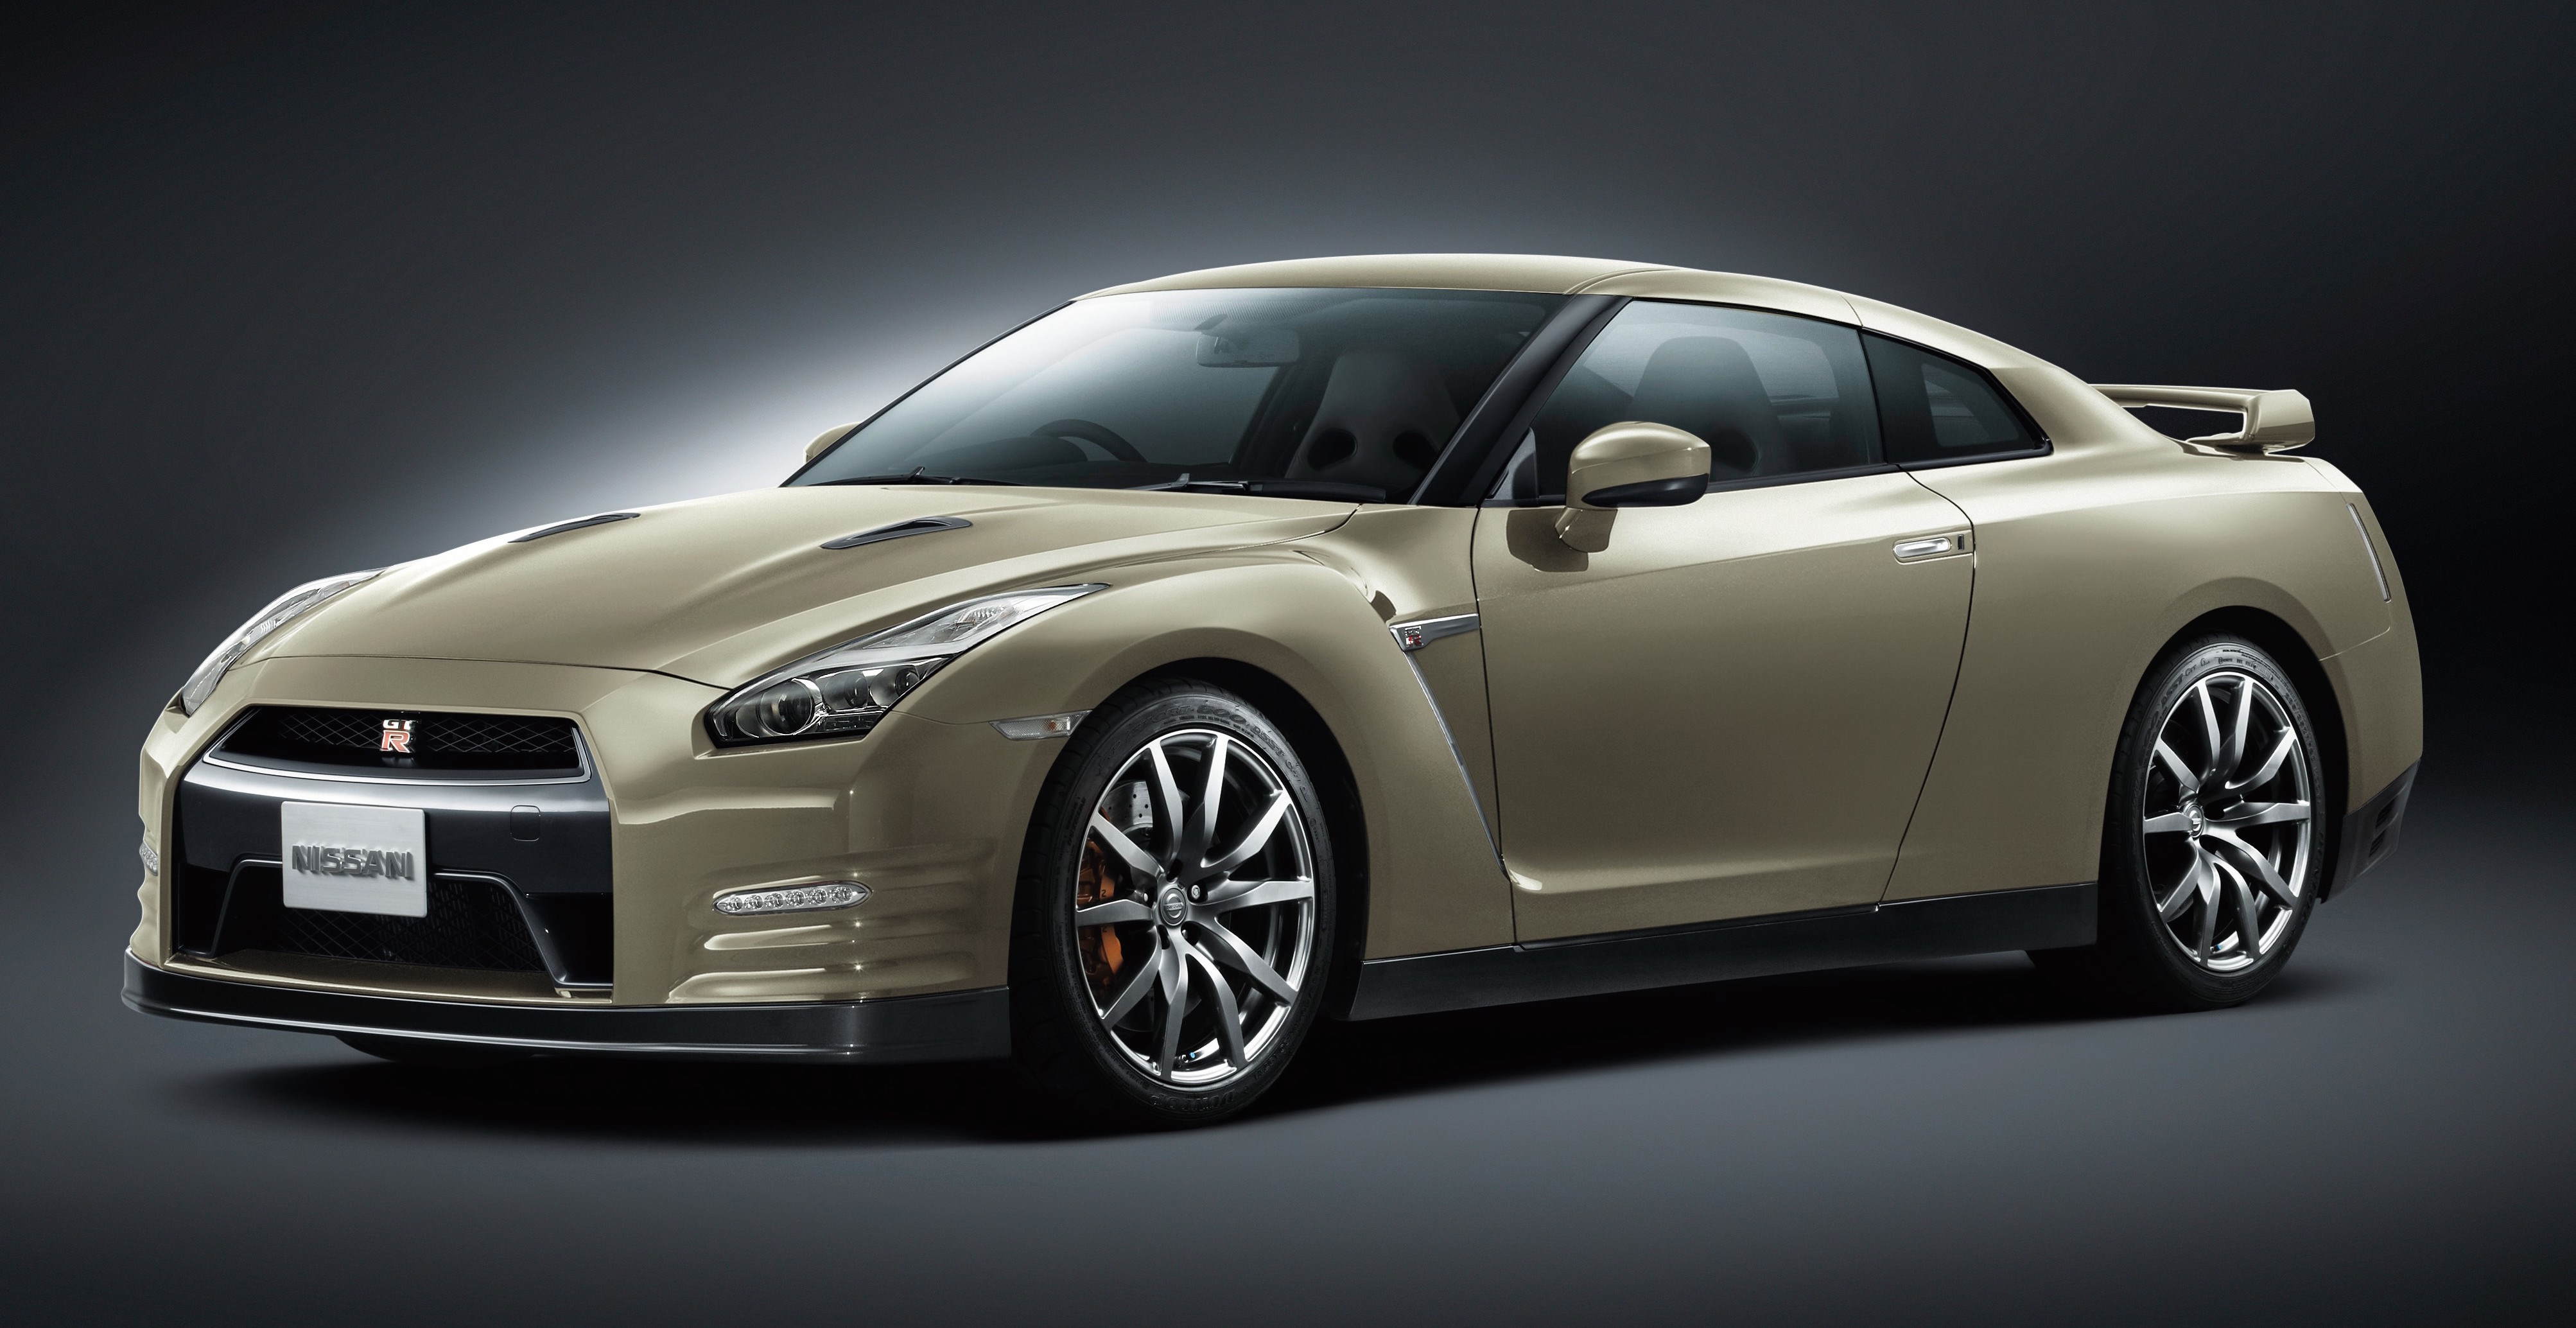 2015 Nissan GT-R - the R35 gets updated yet again, limited ...